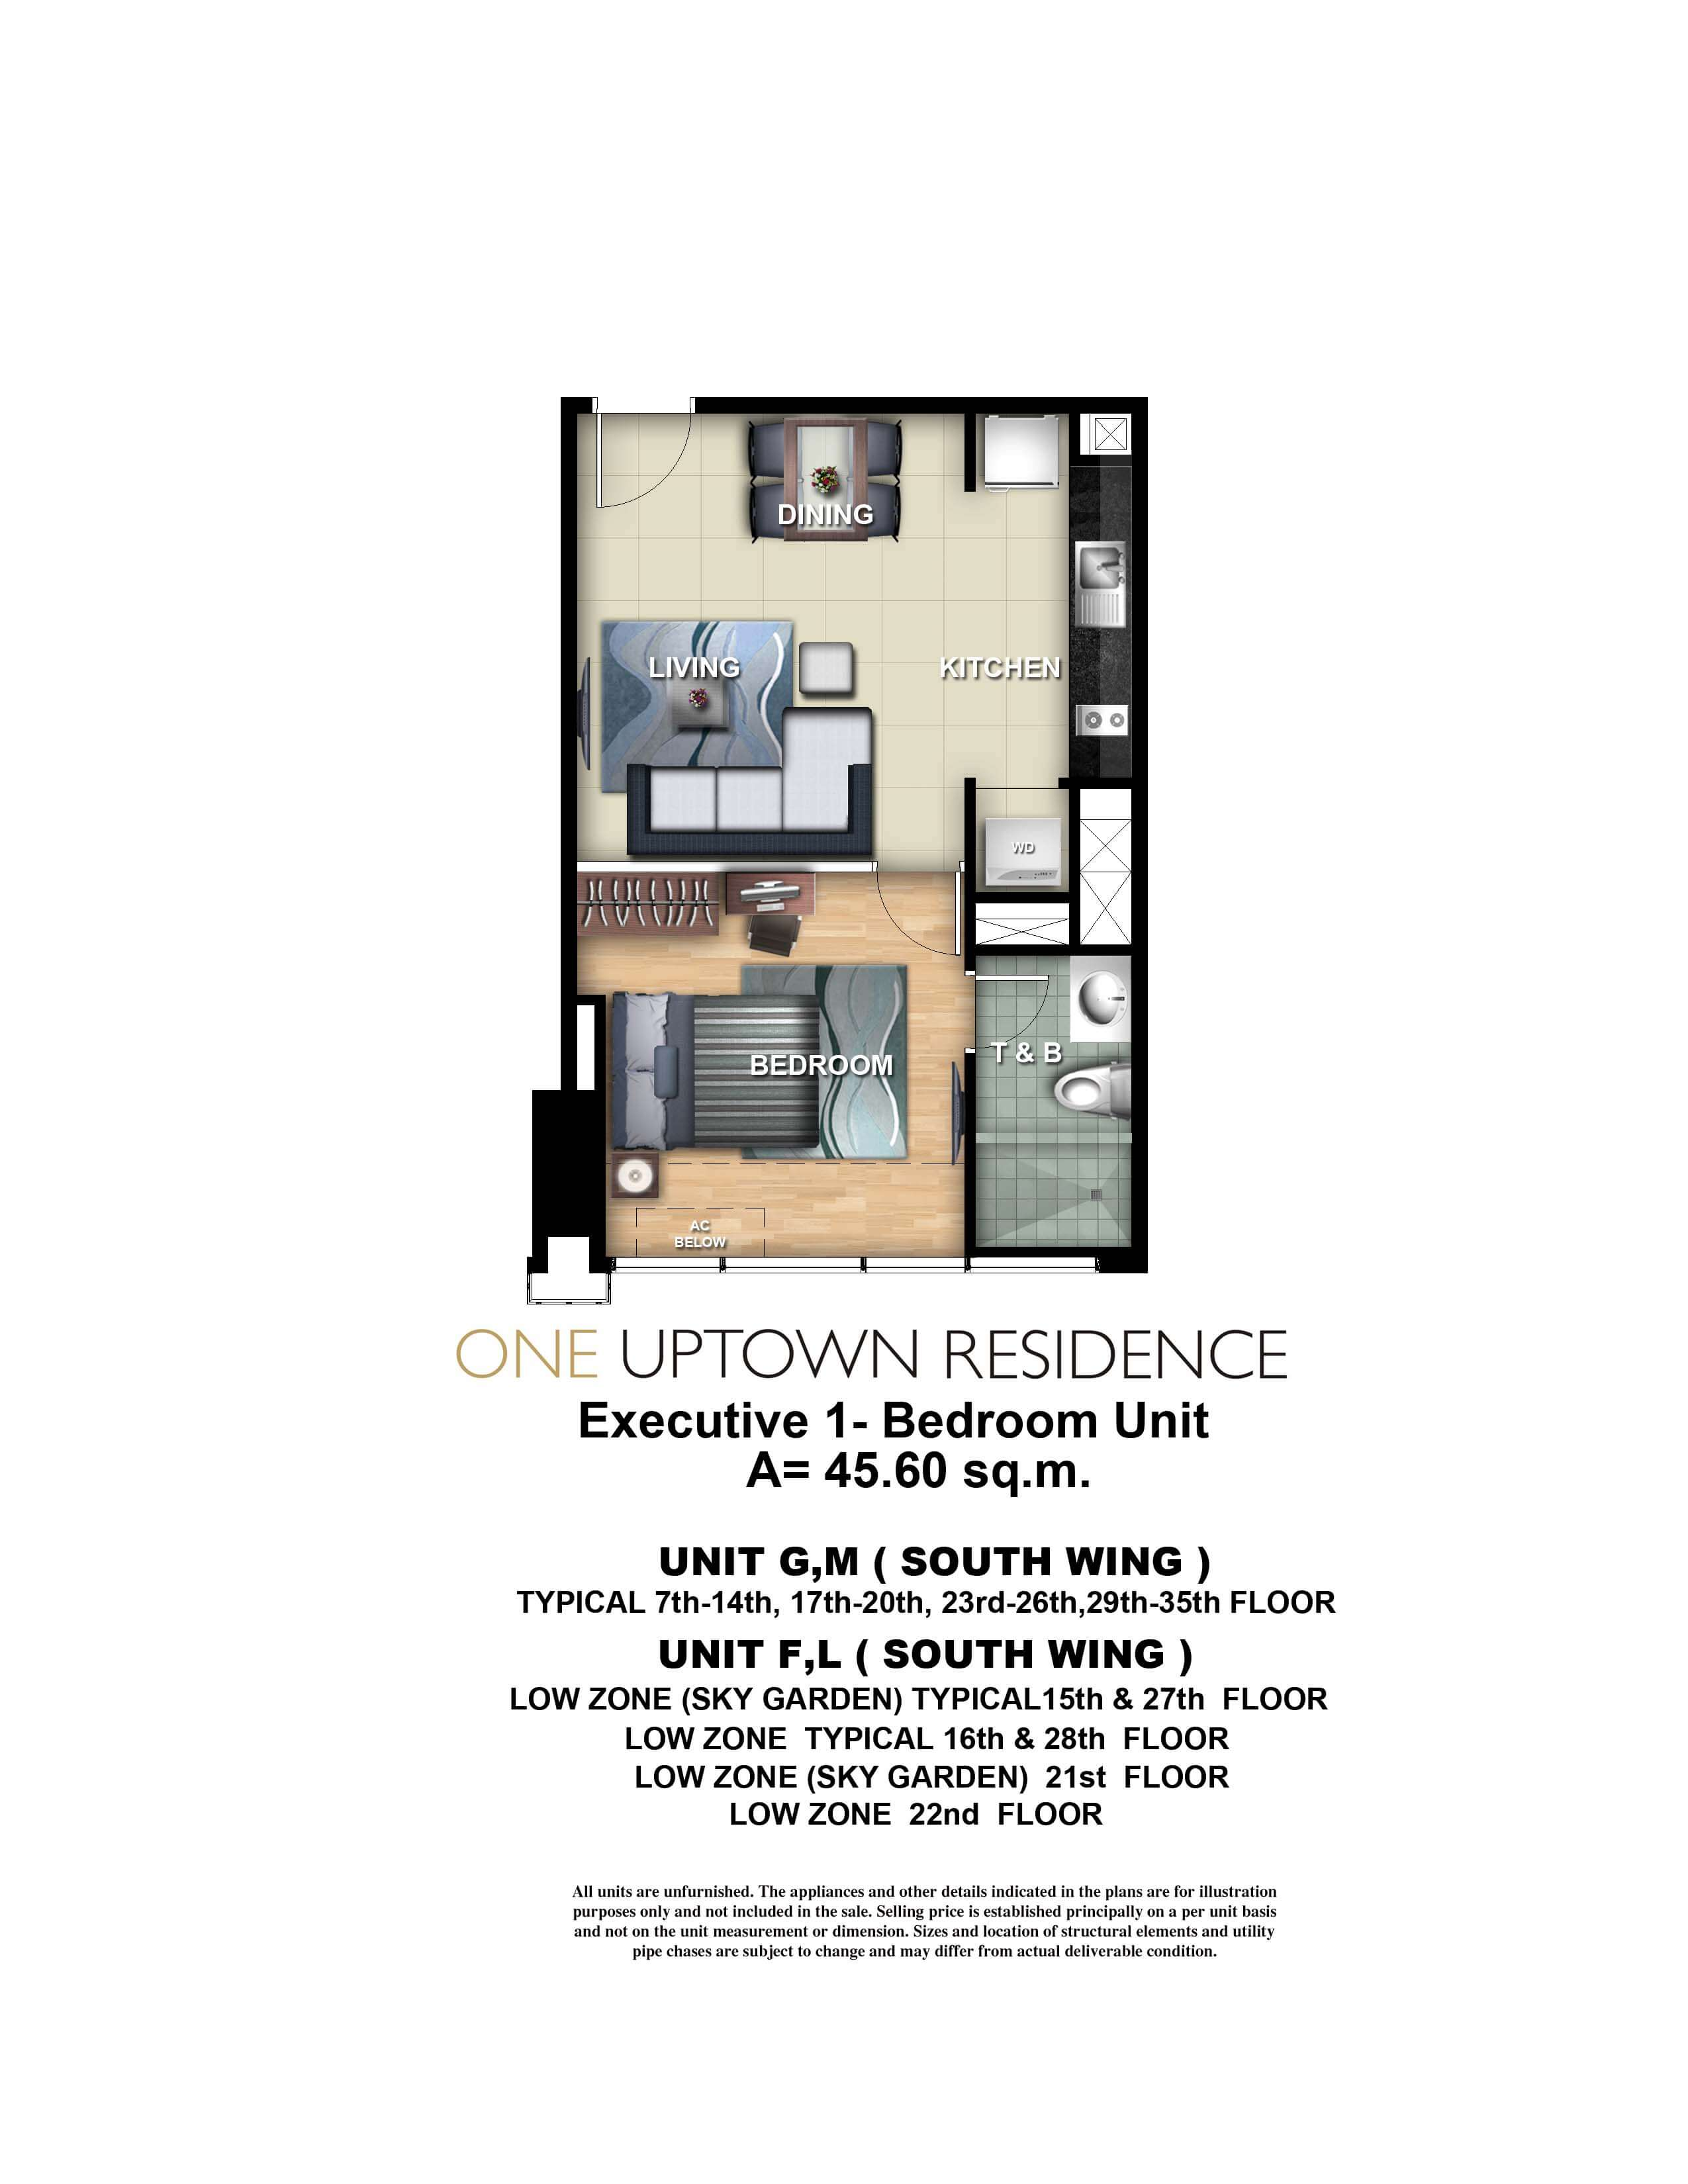 One Uptown Residence Unit Layout 1BR (45.6 sqm)